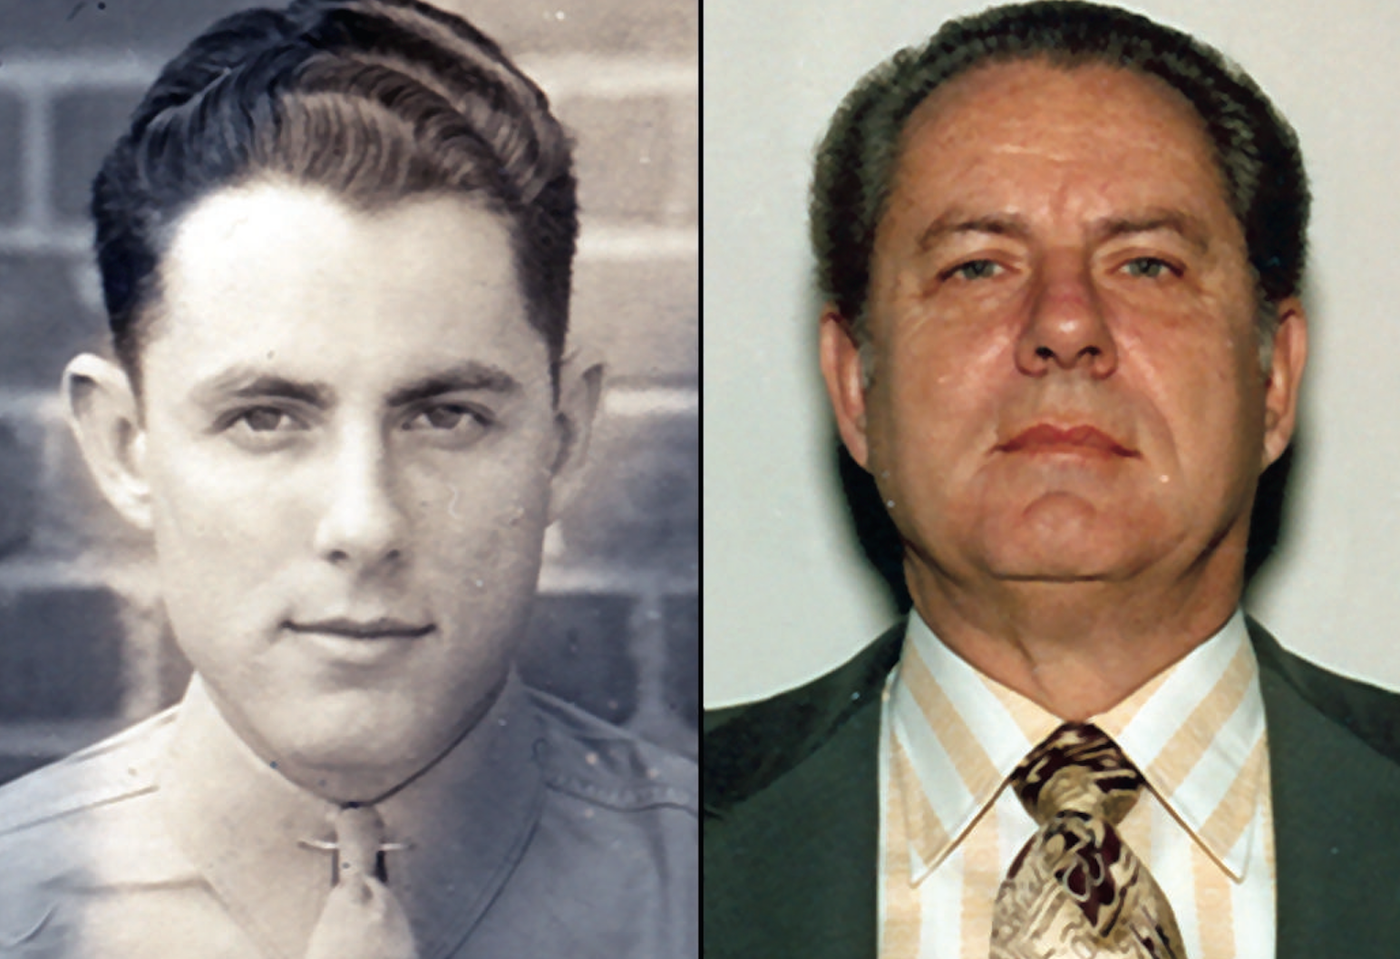 Roy Moore in 1937 and 1974. As special agent in charge of the Jackson Field Office beginning in July 1964, Moore's leadership made a critical difference in turning the tide against the Klan in the 1960s. He was reassigned to Chicago in 1971, then retired in December 1974.